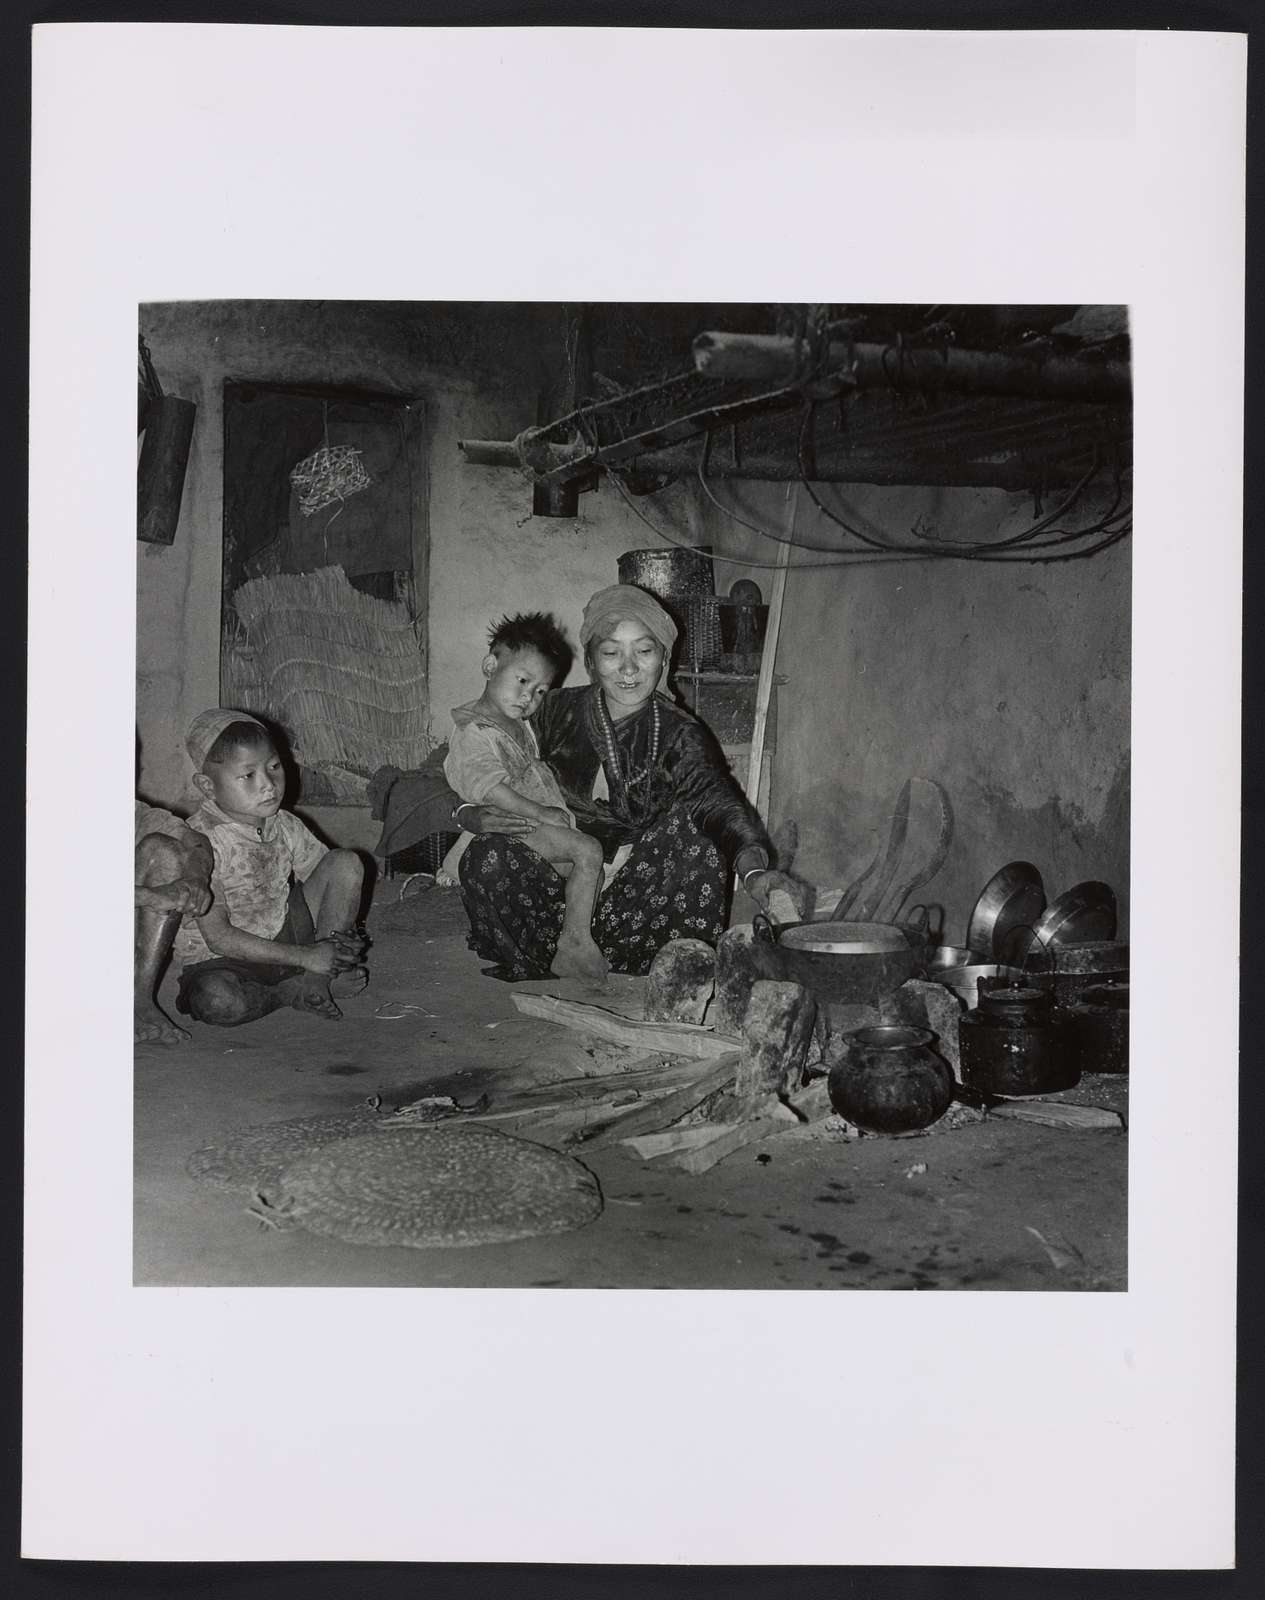 At home, mother cooks dinner at the hearth made from 3 stones